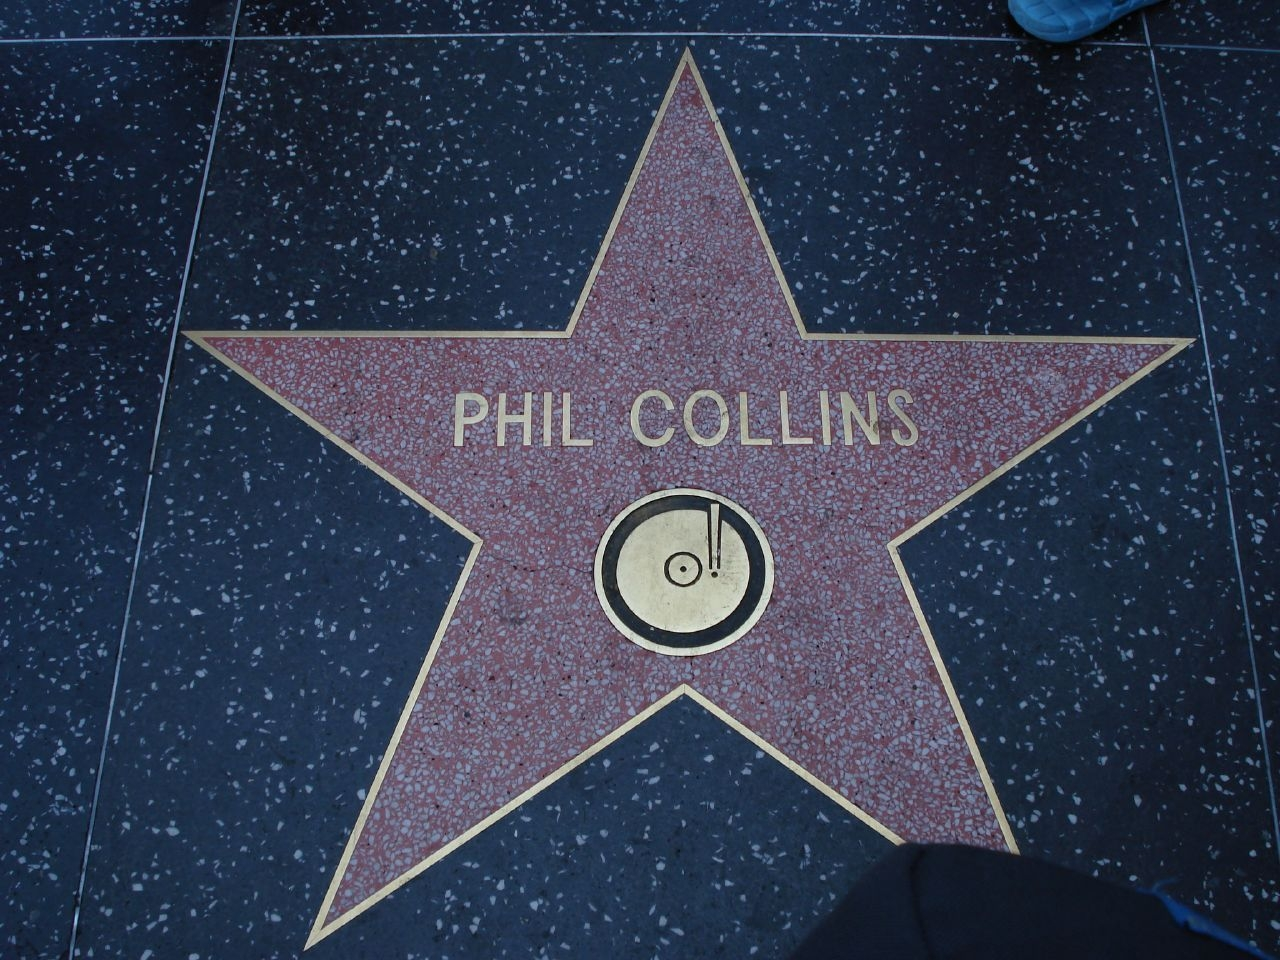 Phil_Collins_star